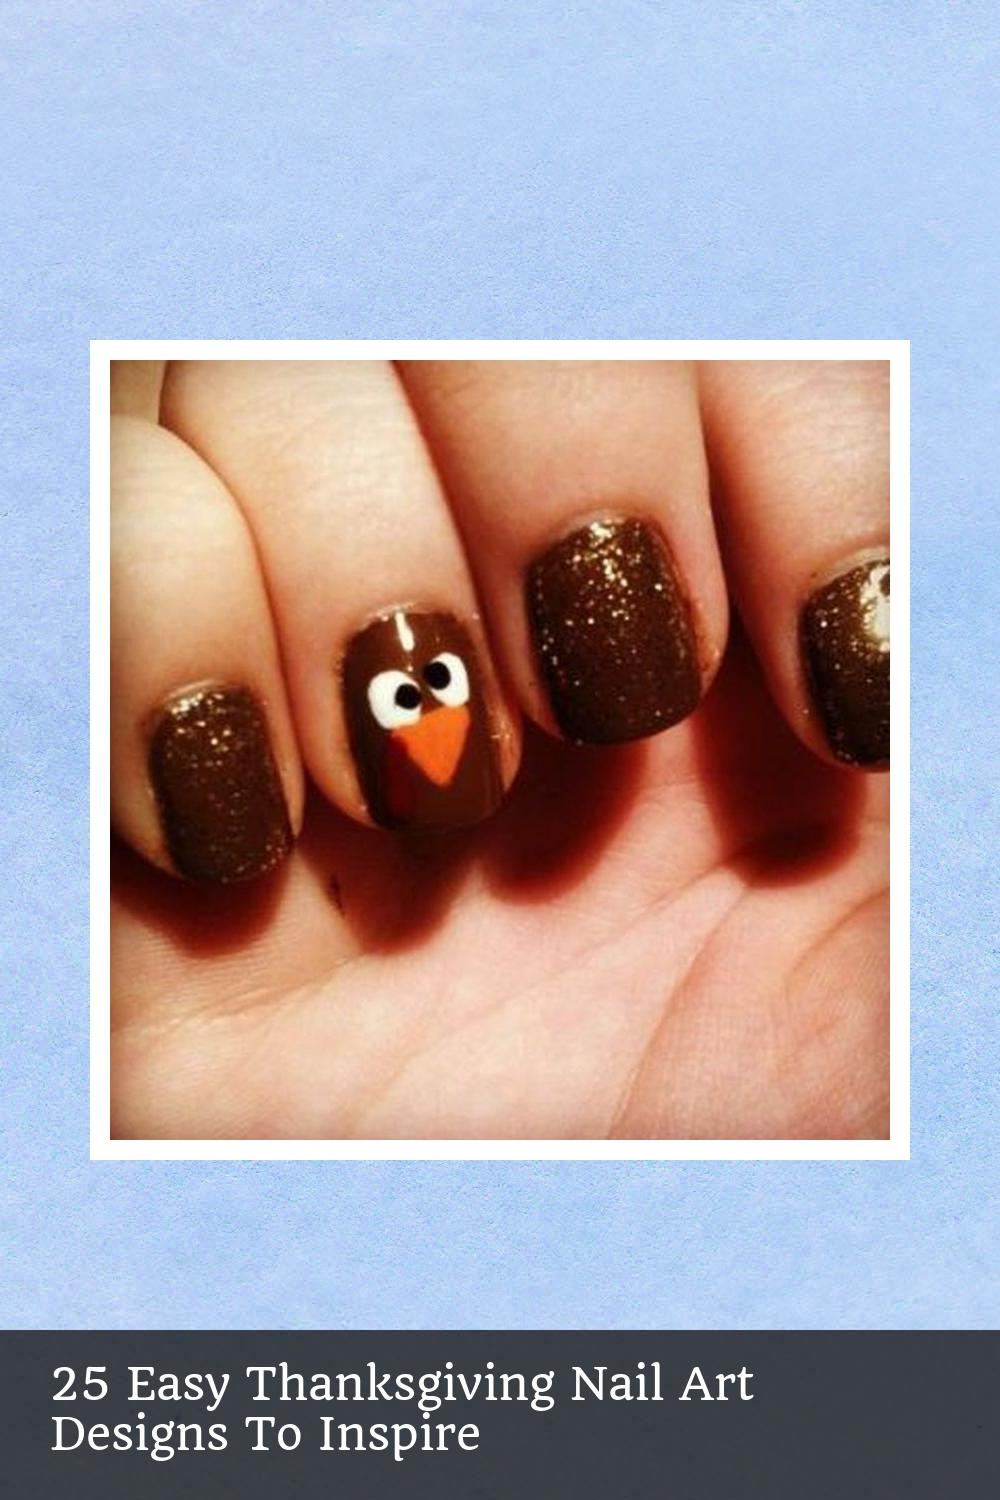 25 Easy Thanksgiving Nail Art Designs To Inspire 7